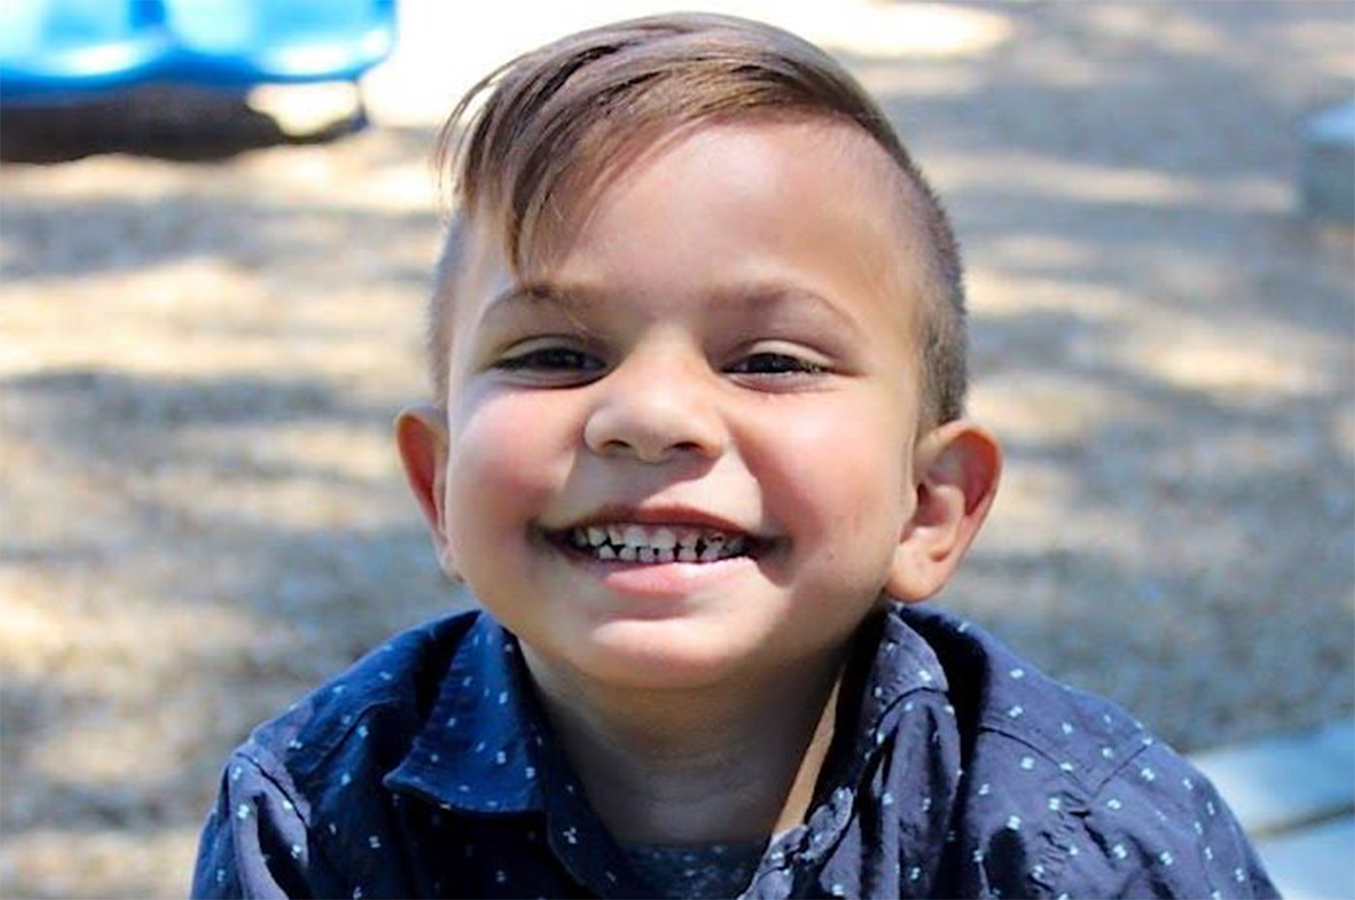 Family Fights to Save 6 Year Old with Childhood Alzheimer's: 'He's the Light of My Life,' Says Mom